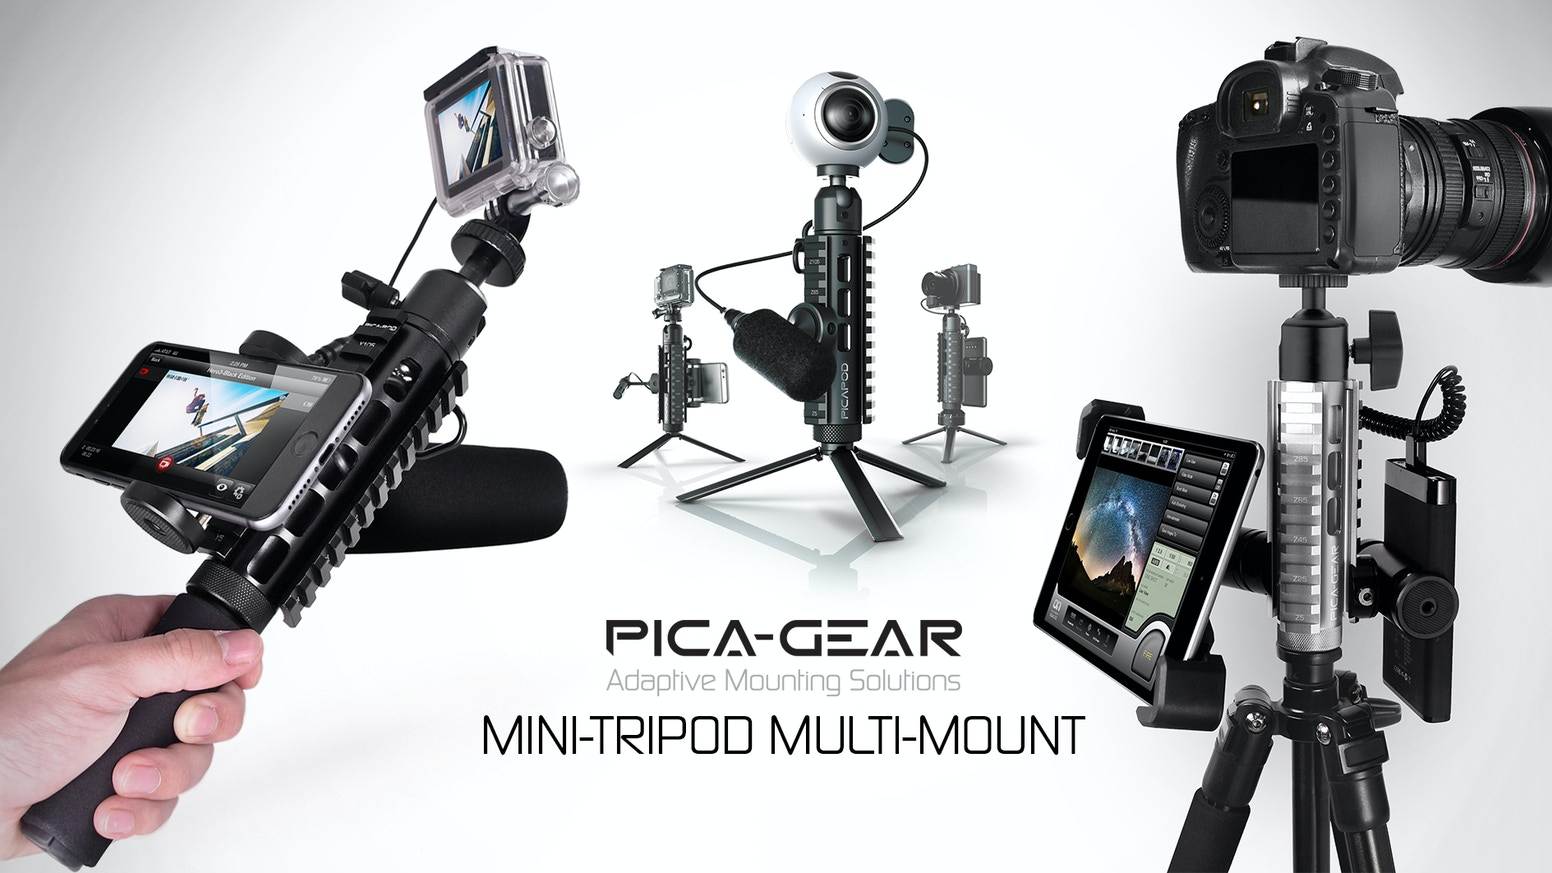 Organize any camera, phone, power bank etc to improve your shots. Works as a portable mini tripod or attaches to any full-sized tripod